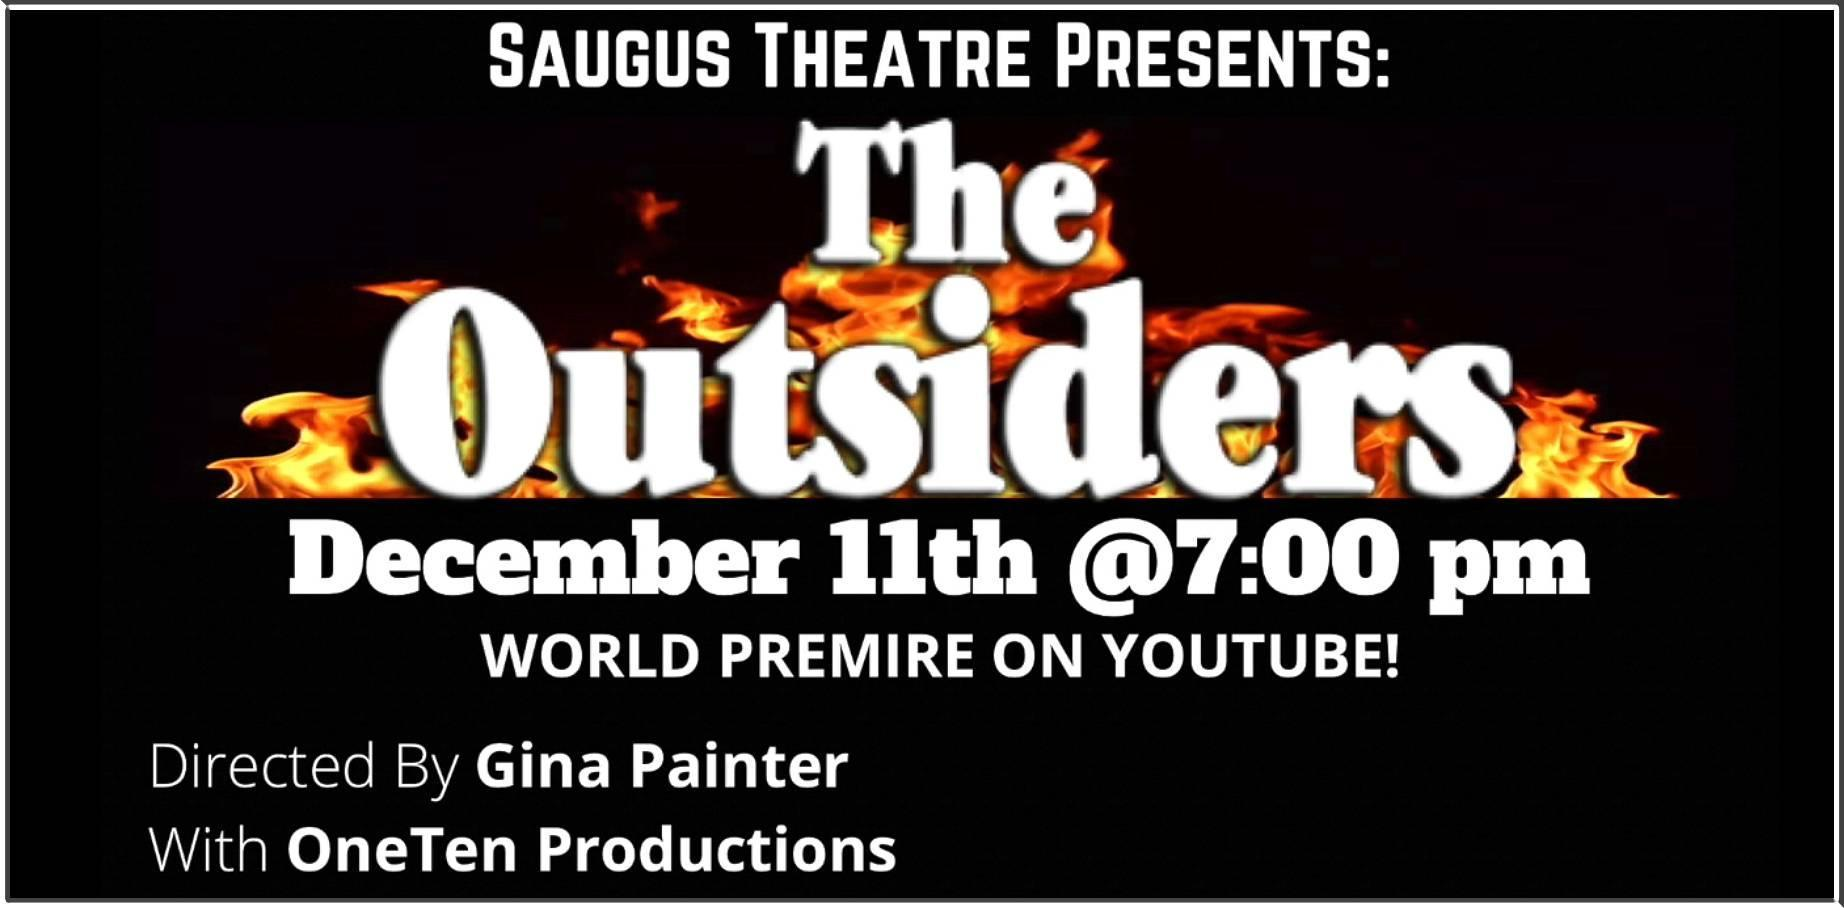 performing Arts - The Outsiders Play image